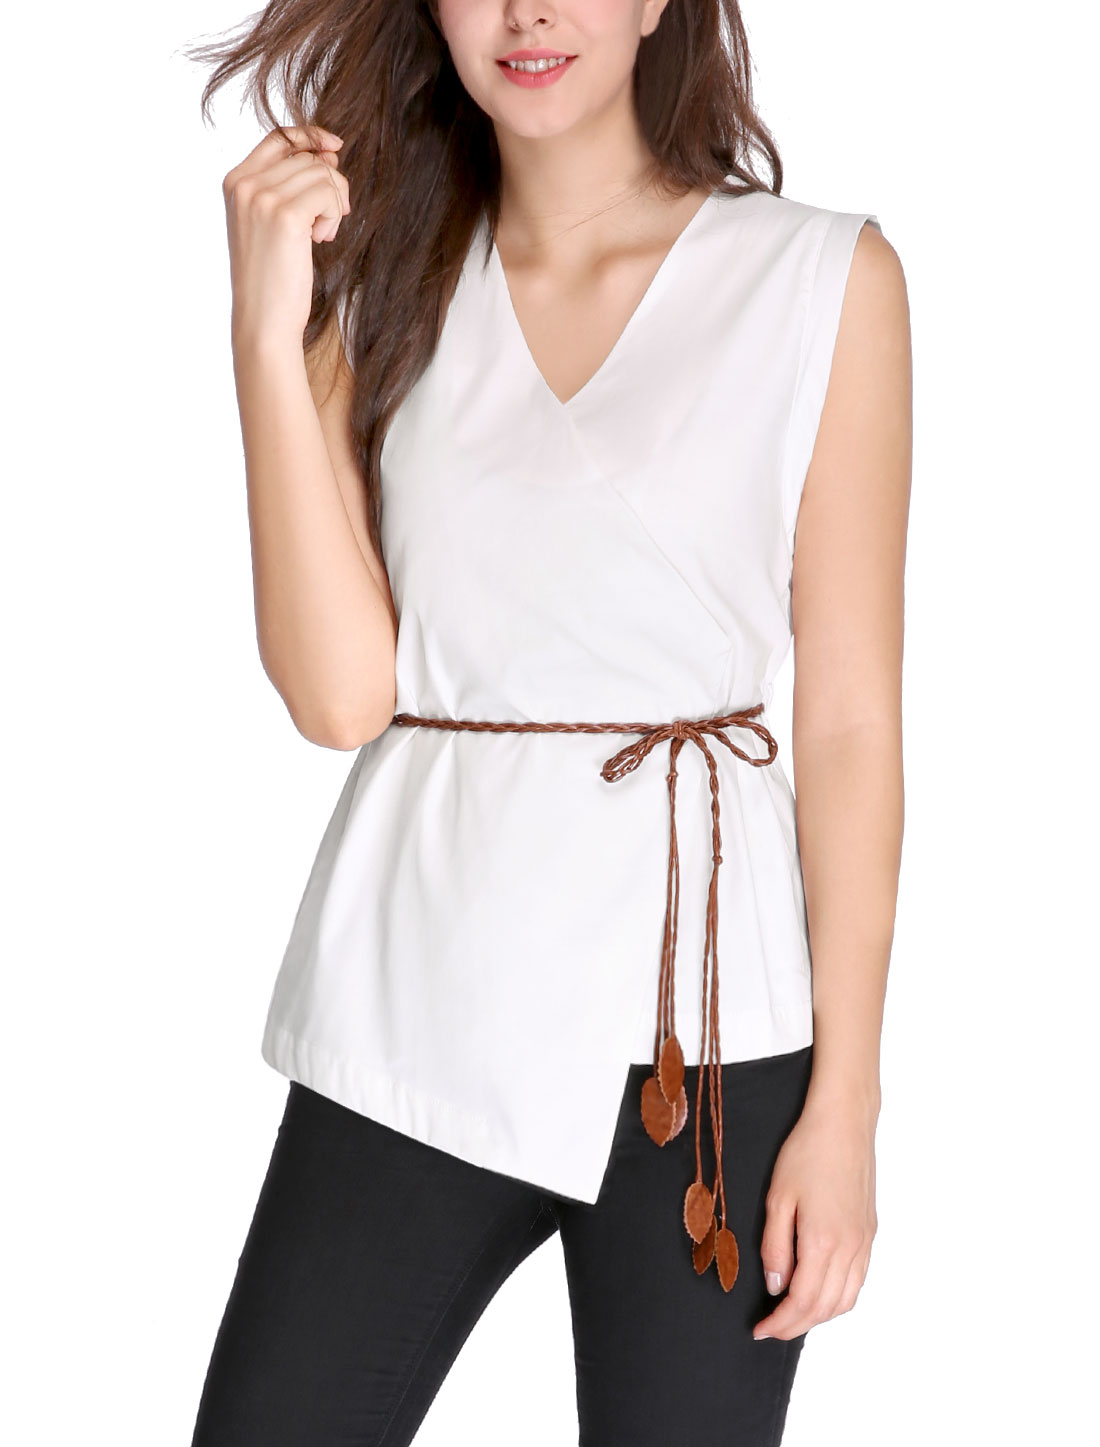 Women V Neck Asymmetric Wrap Front Belted Sleeveless Top White XL